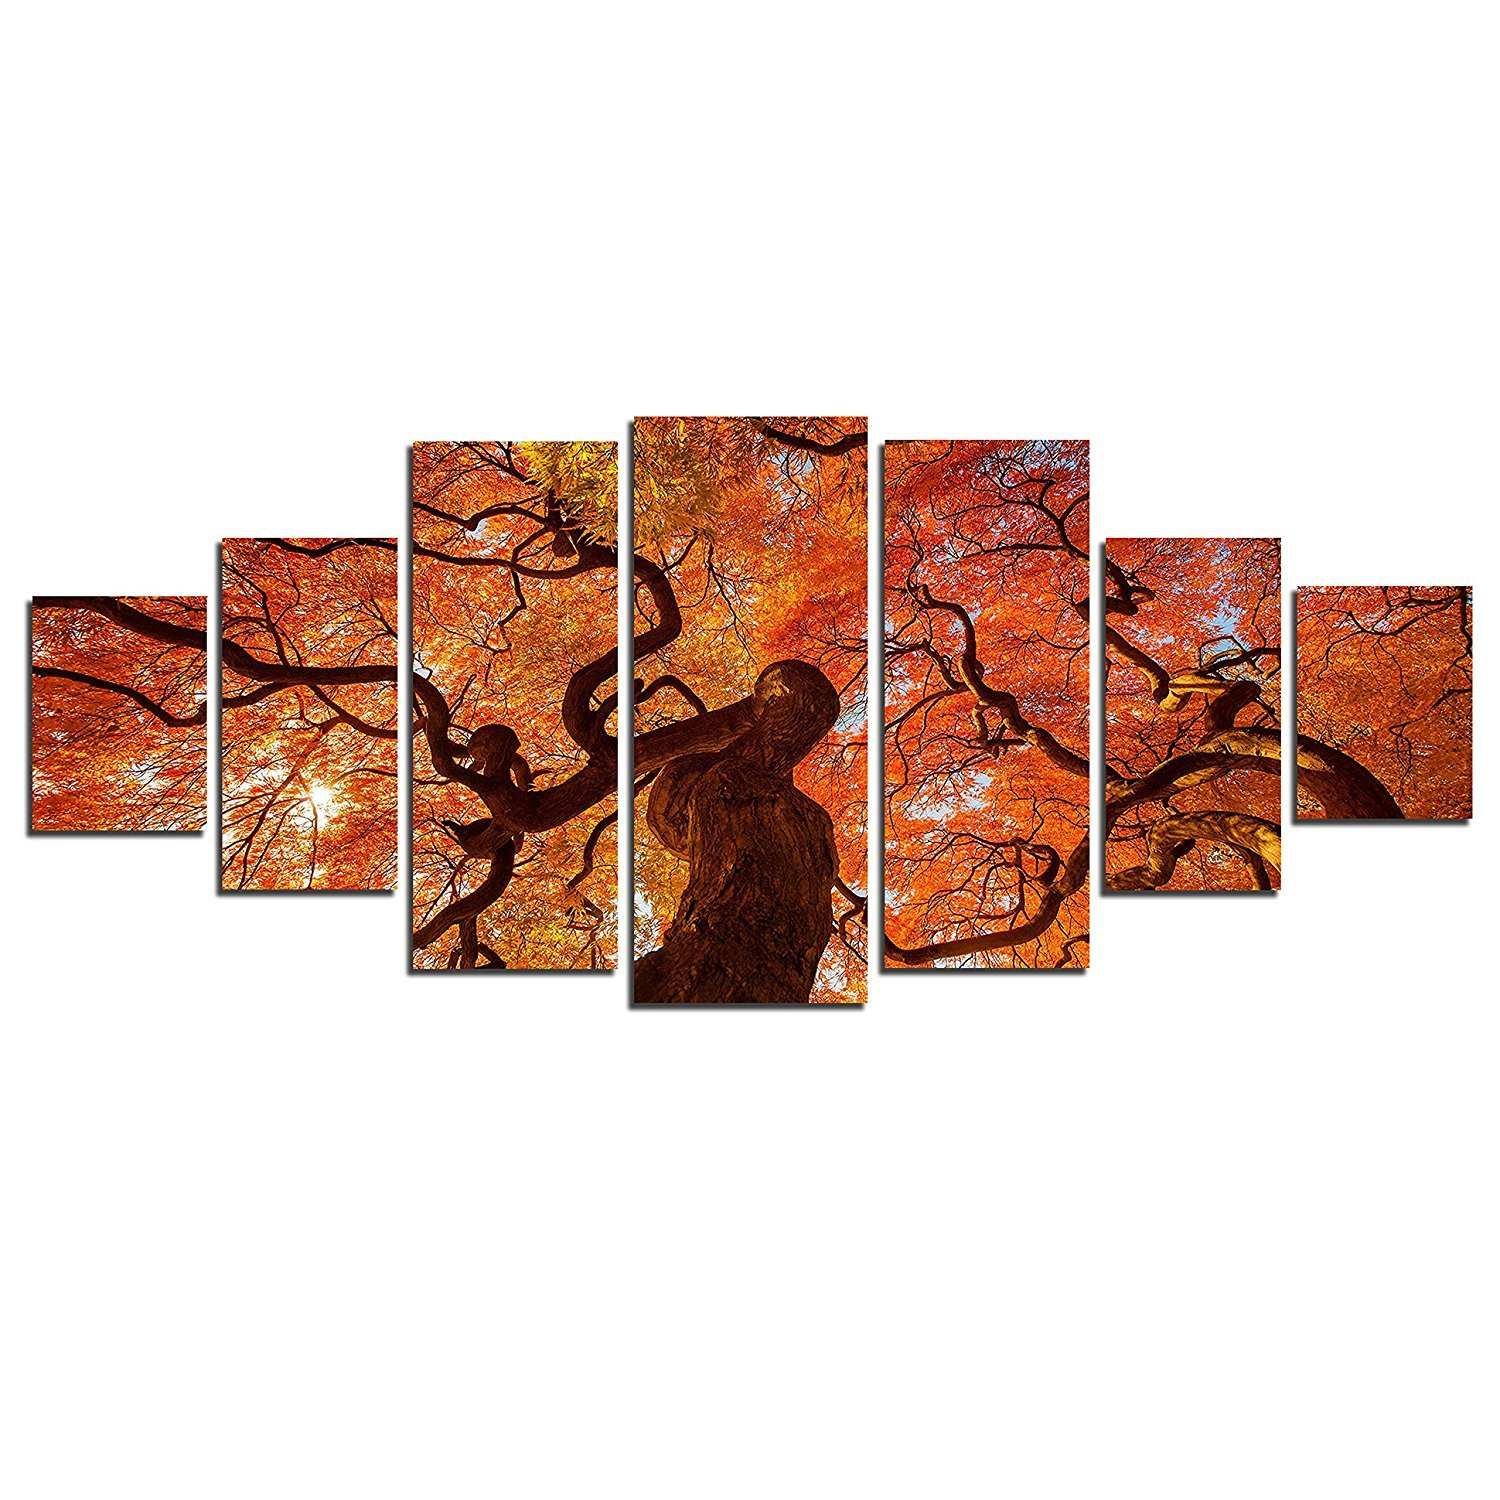 Startonight Glow in the Dark, Huge Canvas Wall Art Maple In Autumn, Home Decor, Dual View Surprise Artwork Modern Framed Wall Art Set of 7 Panels Total 39.37 x 94.49 inch